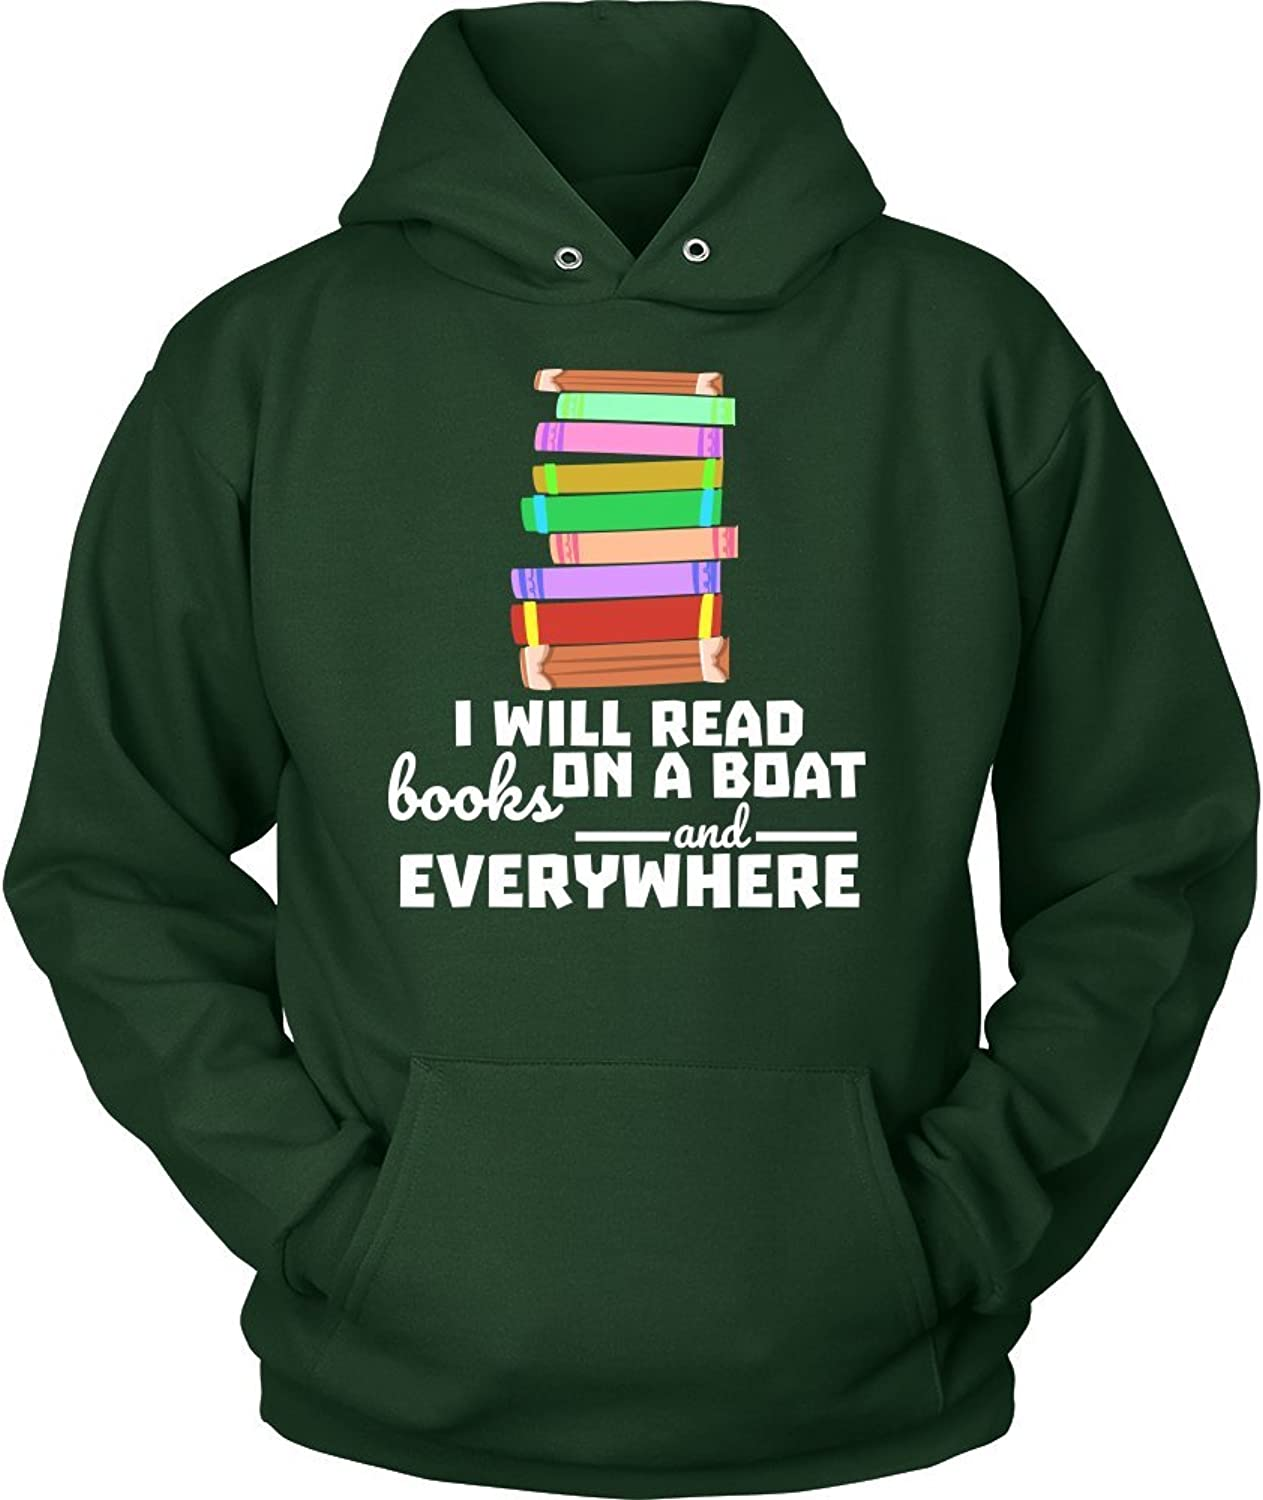 Lifehiker Designs I Will Read Books On a Boat and Everywhere, Librarians Hoodie